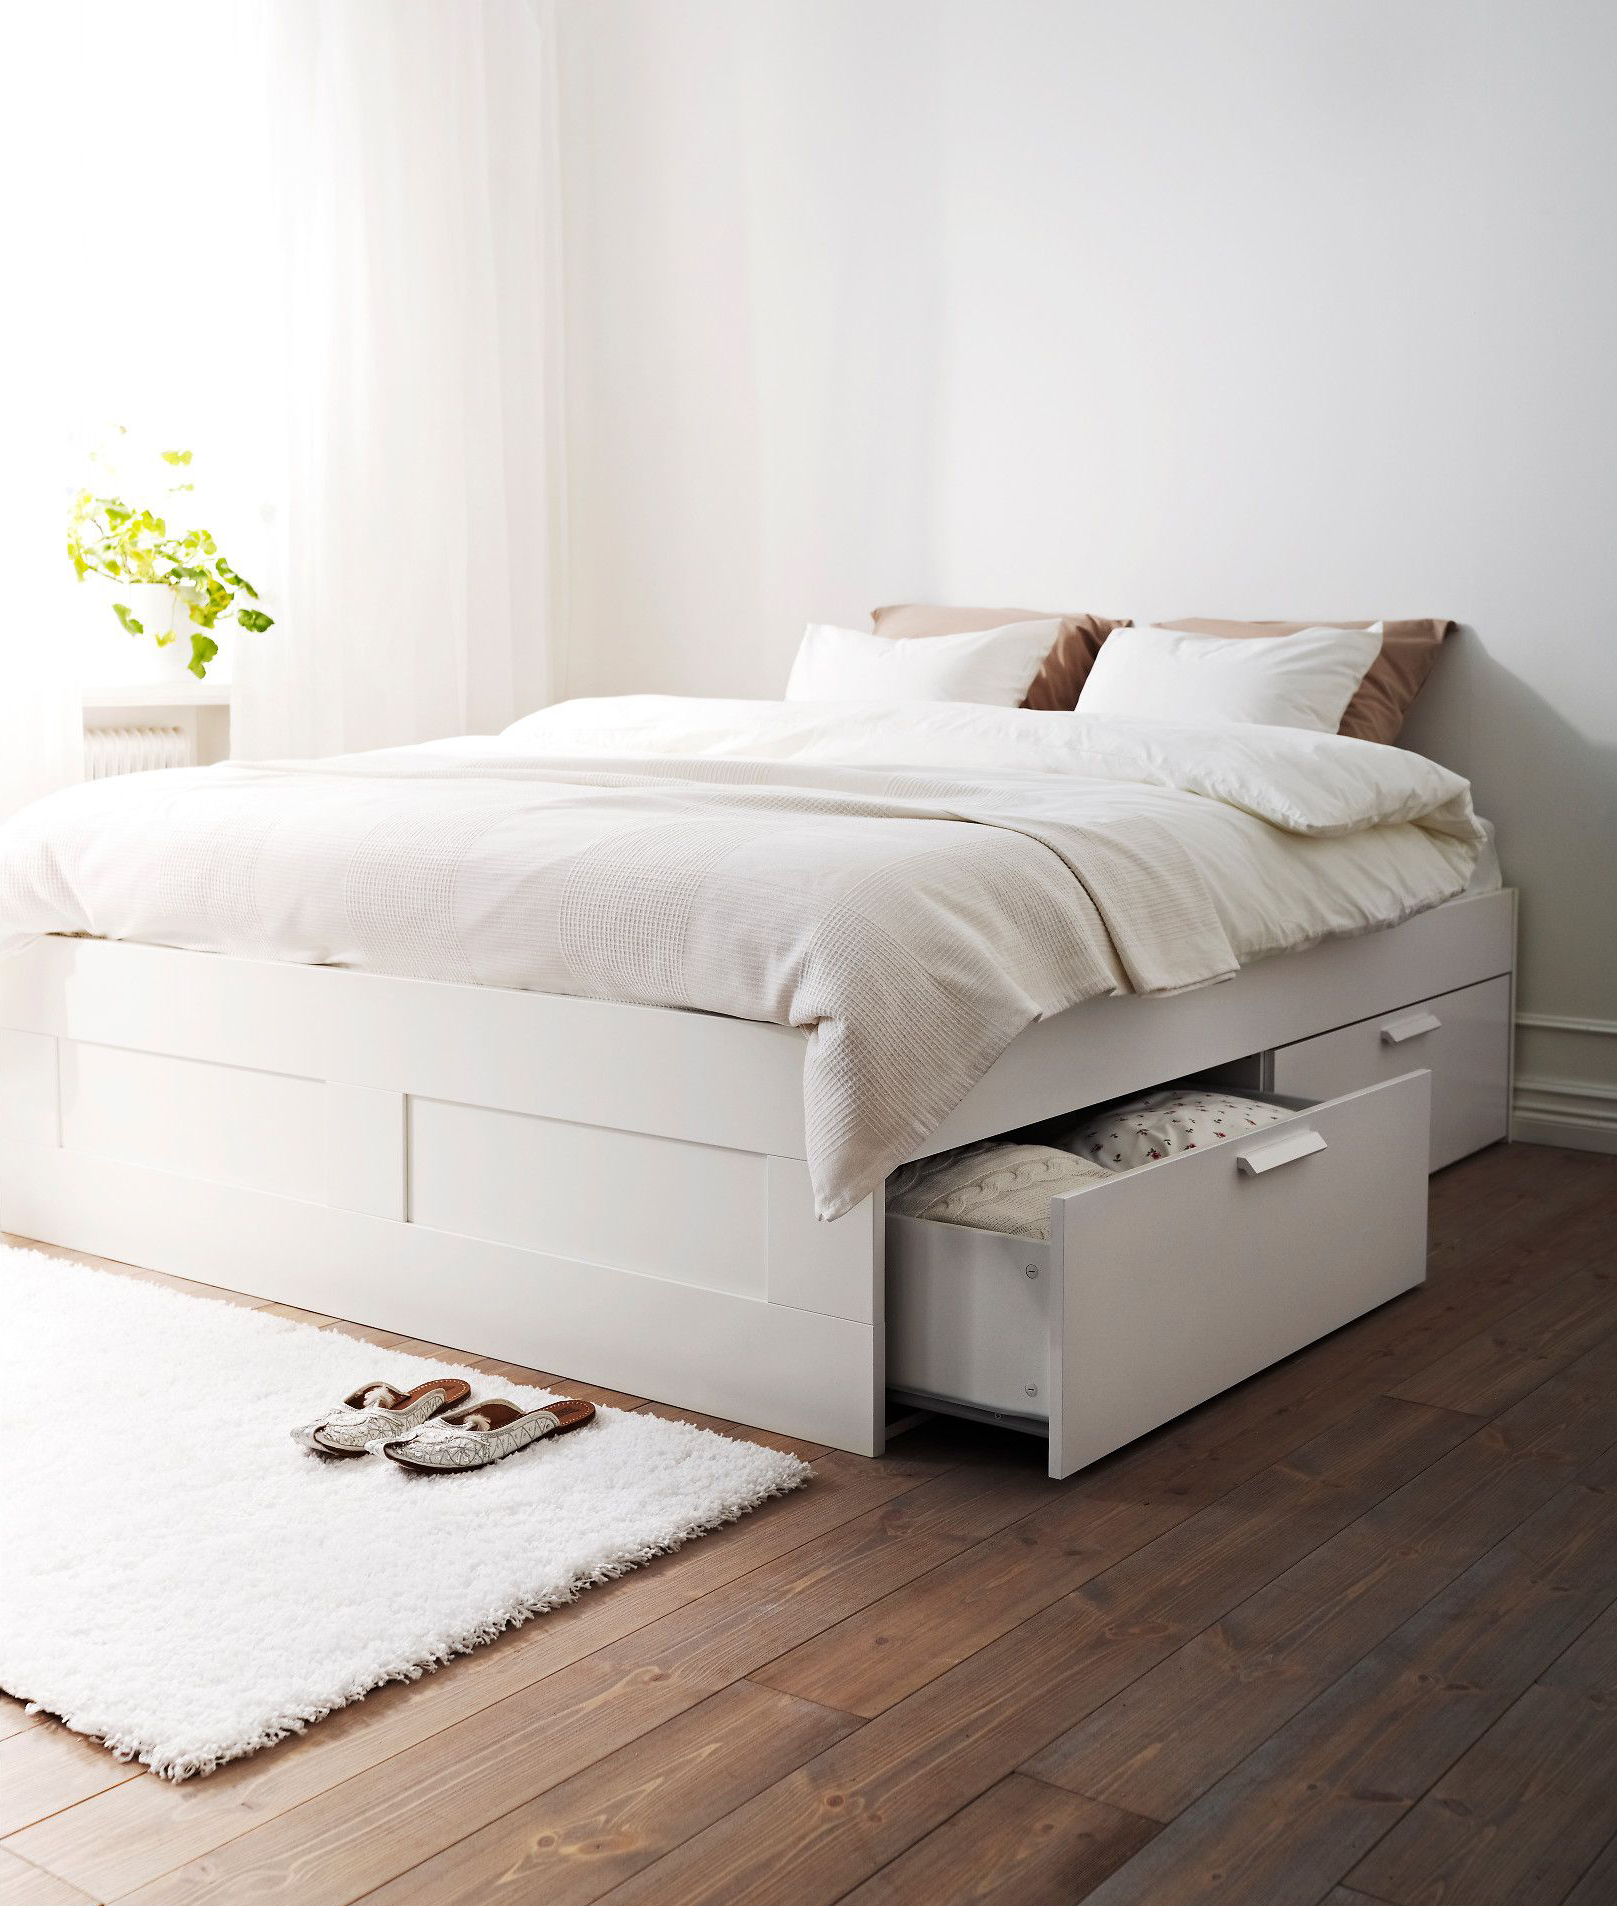 Mail home livable flagship store flagship Braun double bed with storage of simple modern small apartment assembly